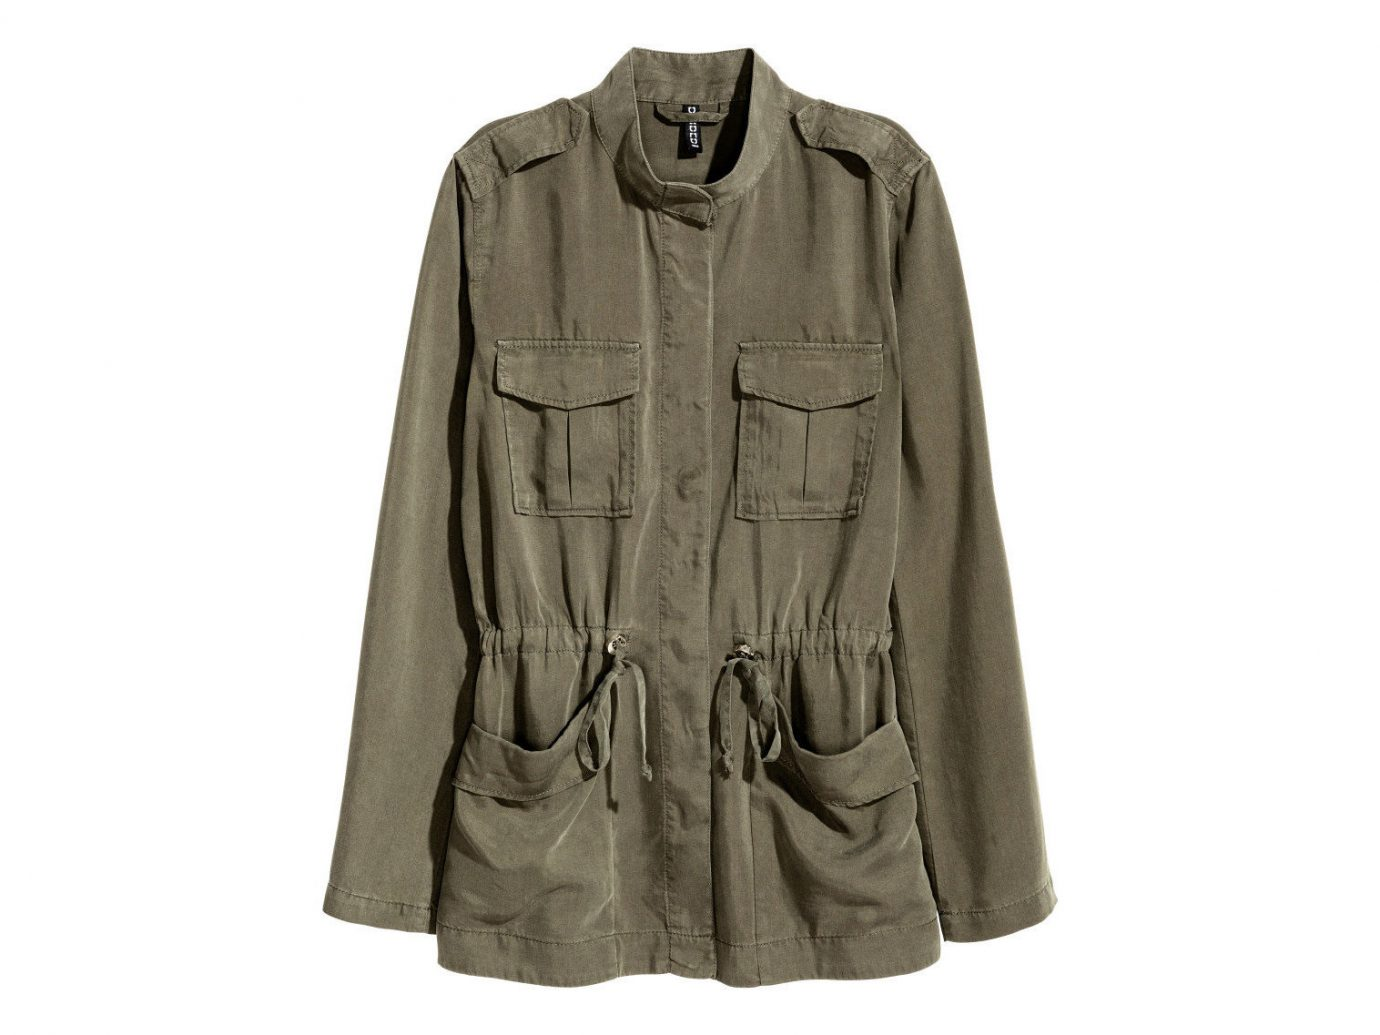 Style + Design clothing coat sleeve jacket outerwear trench coat pocket overcoat textile leather collar old